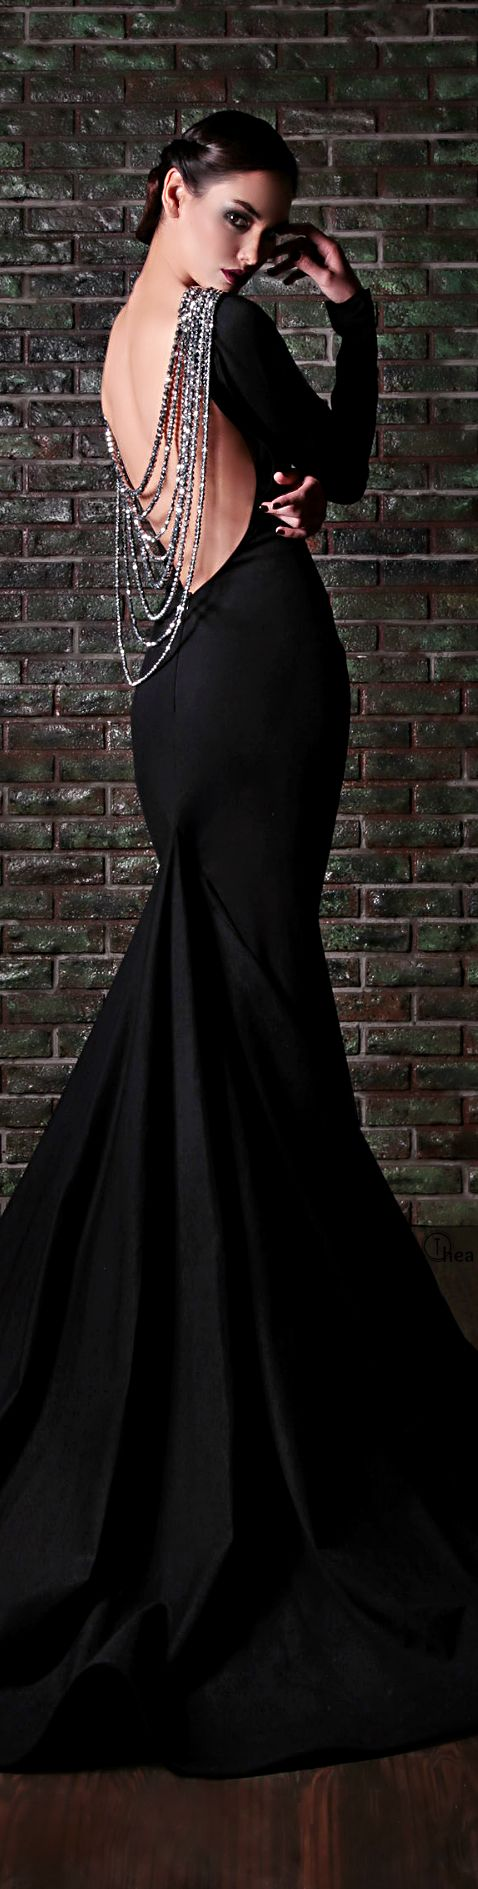 13 Most Beautiful Long Black Dresses From RAMI KADI, click to see all--I'll wear this one when you're superintendent :)